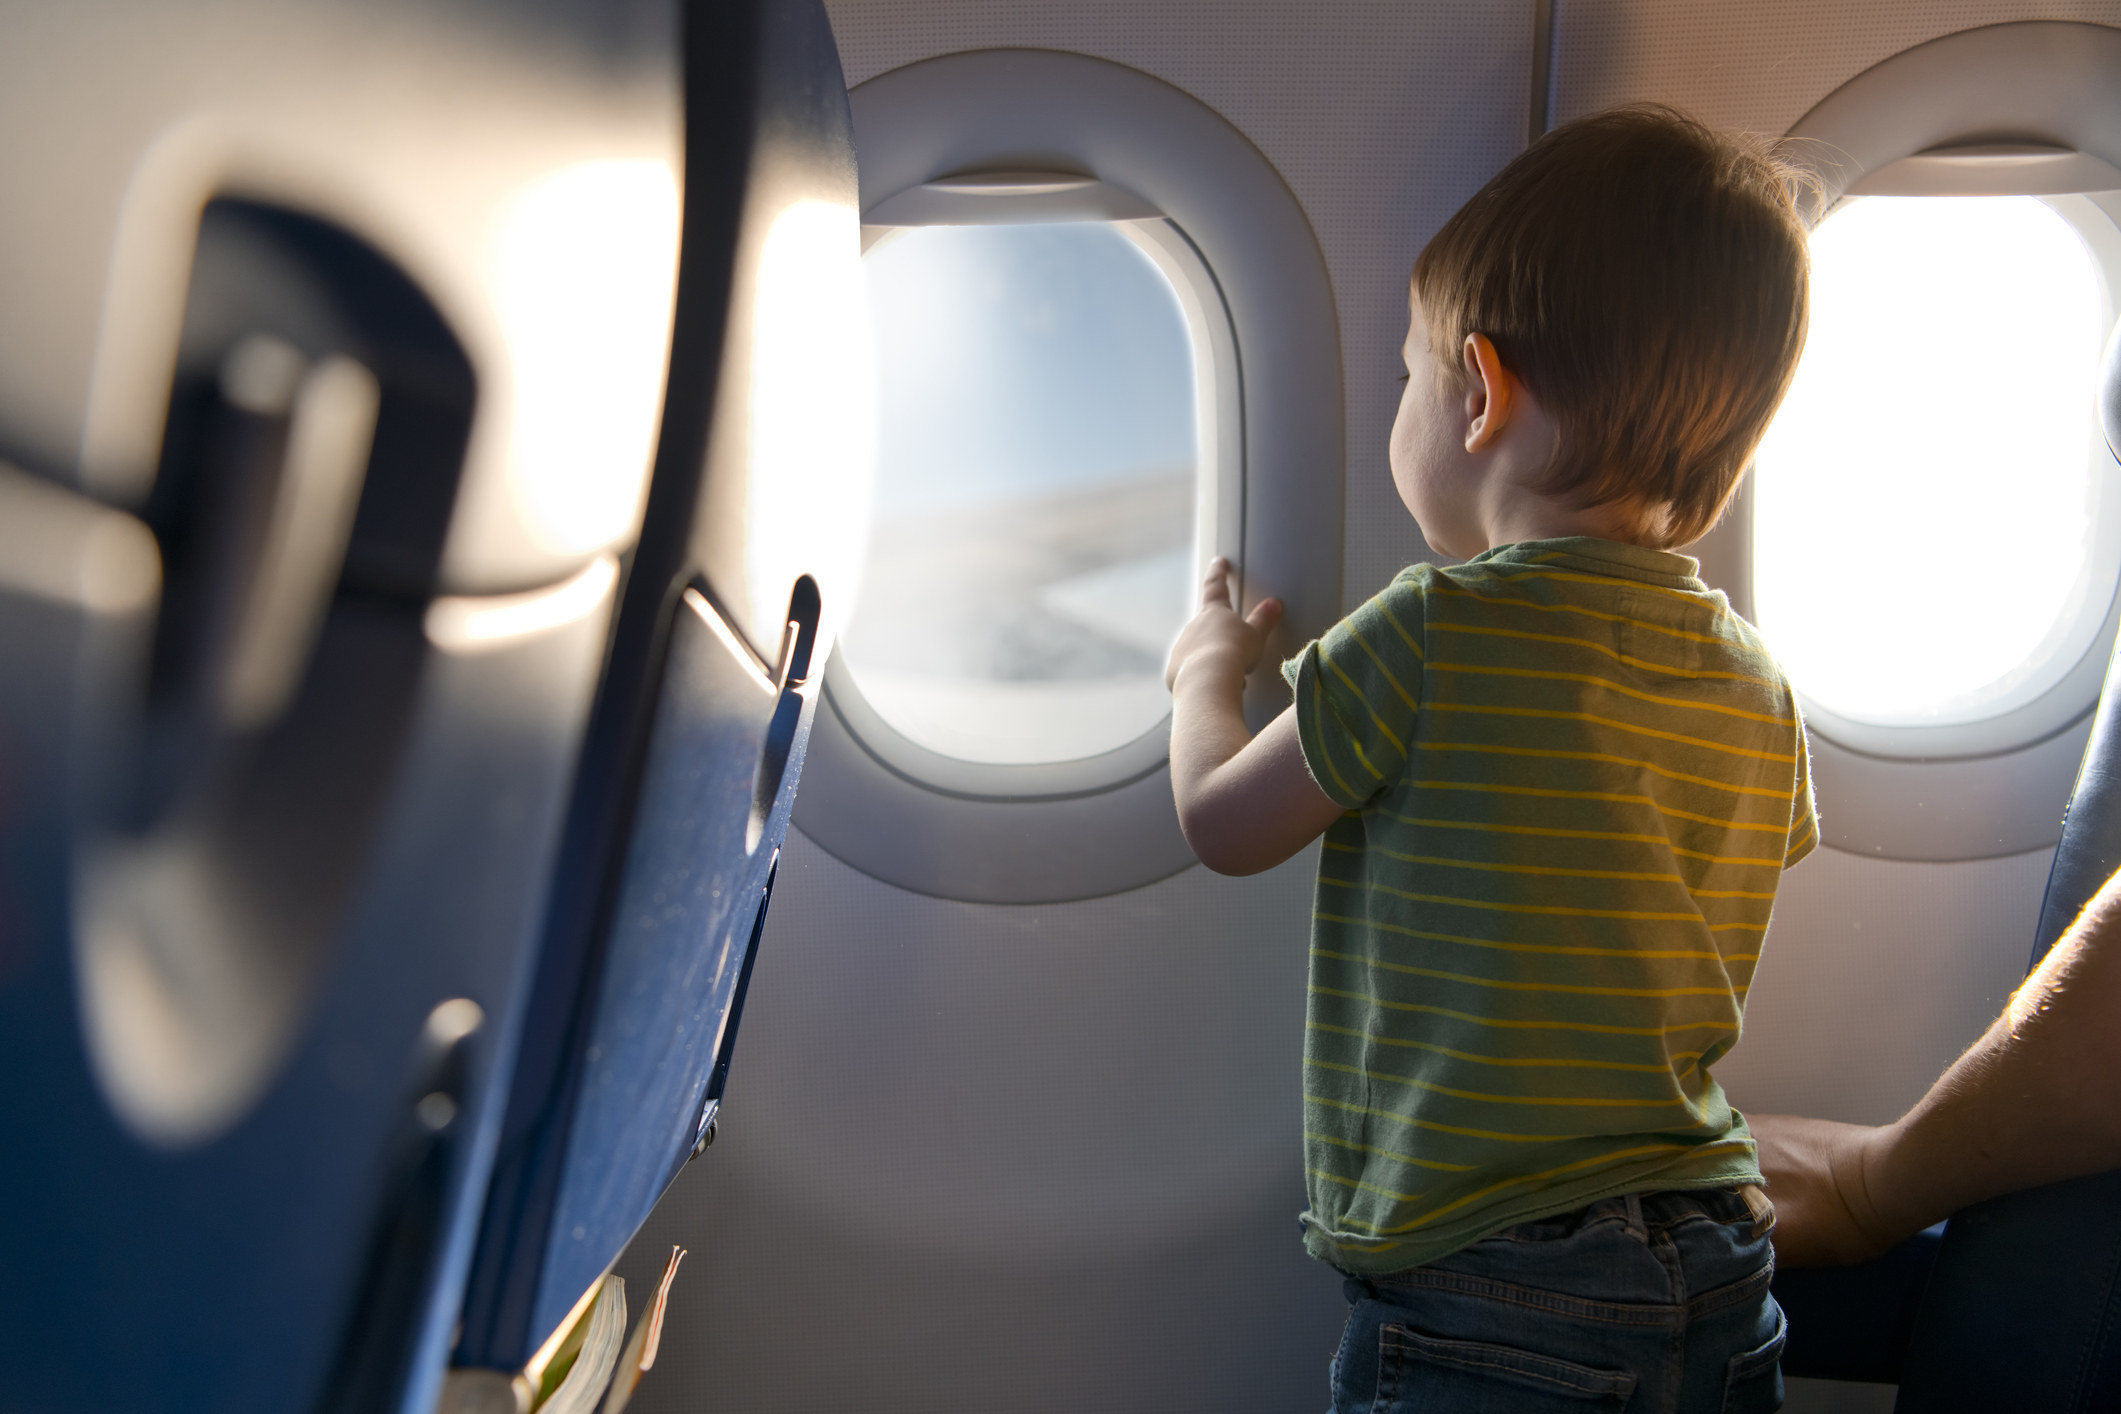 A child looking out an airplane window